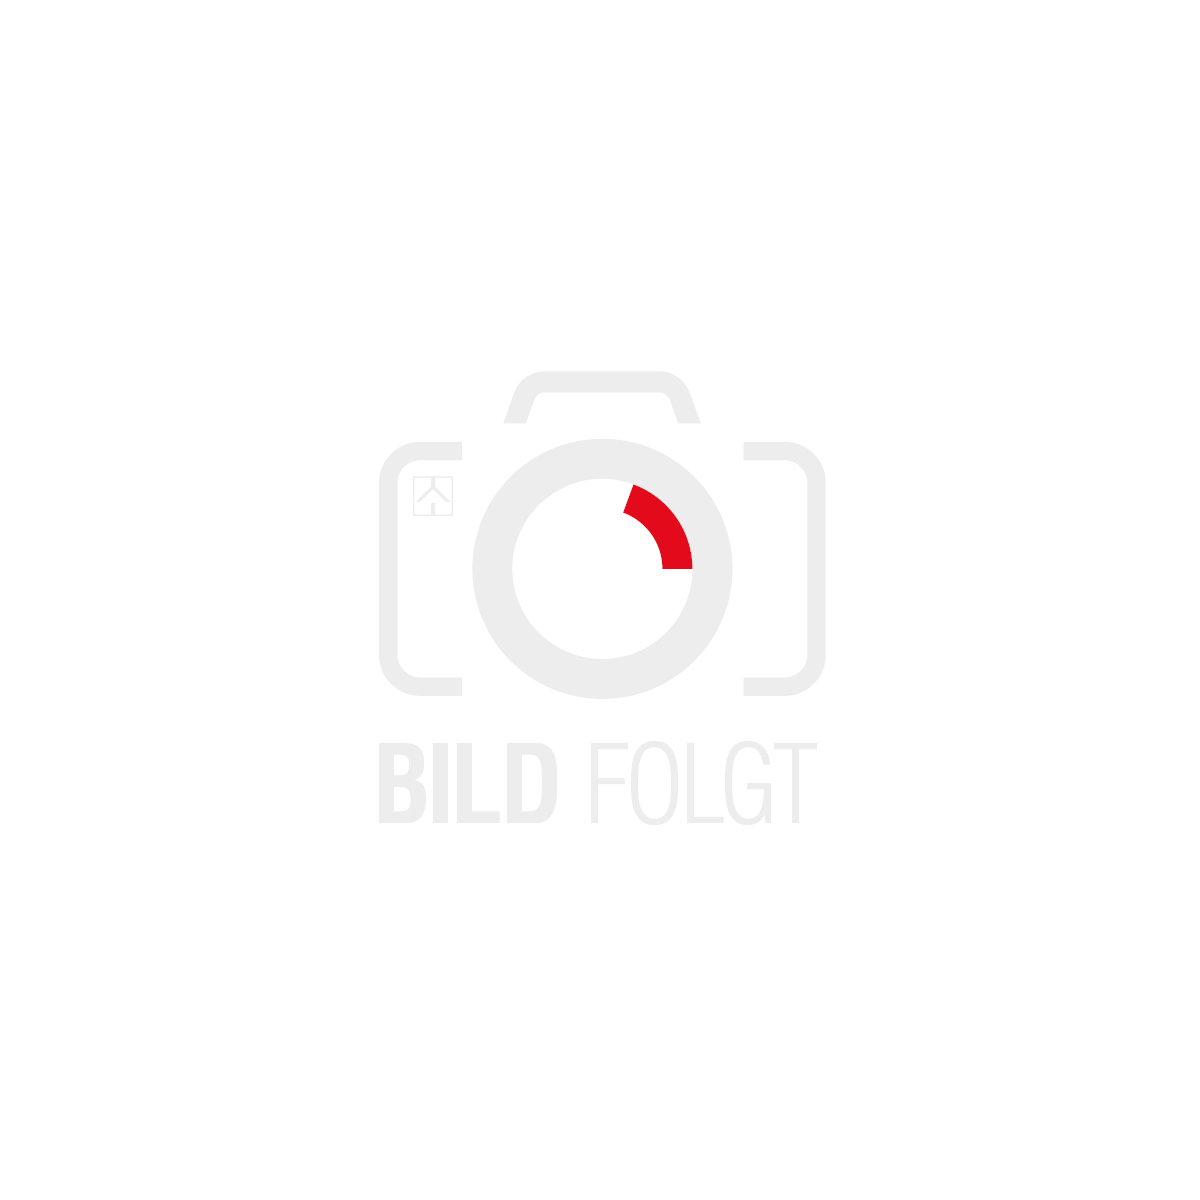 Dichtung-Set ATAG iCon2, S4868000